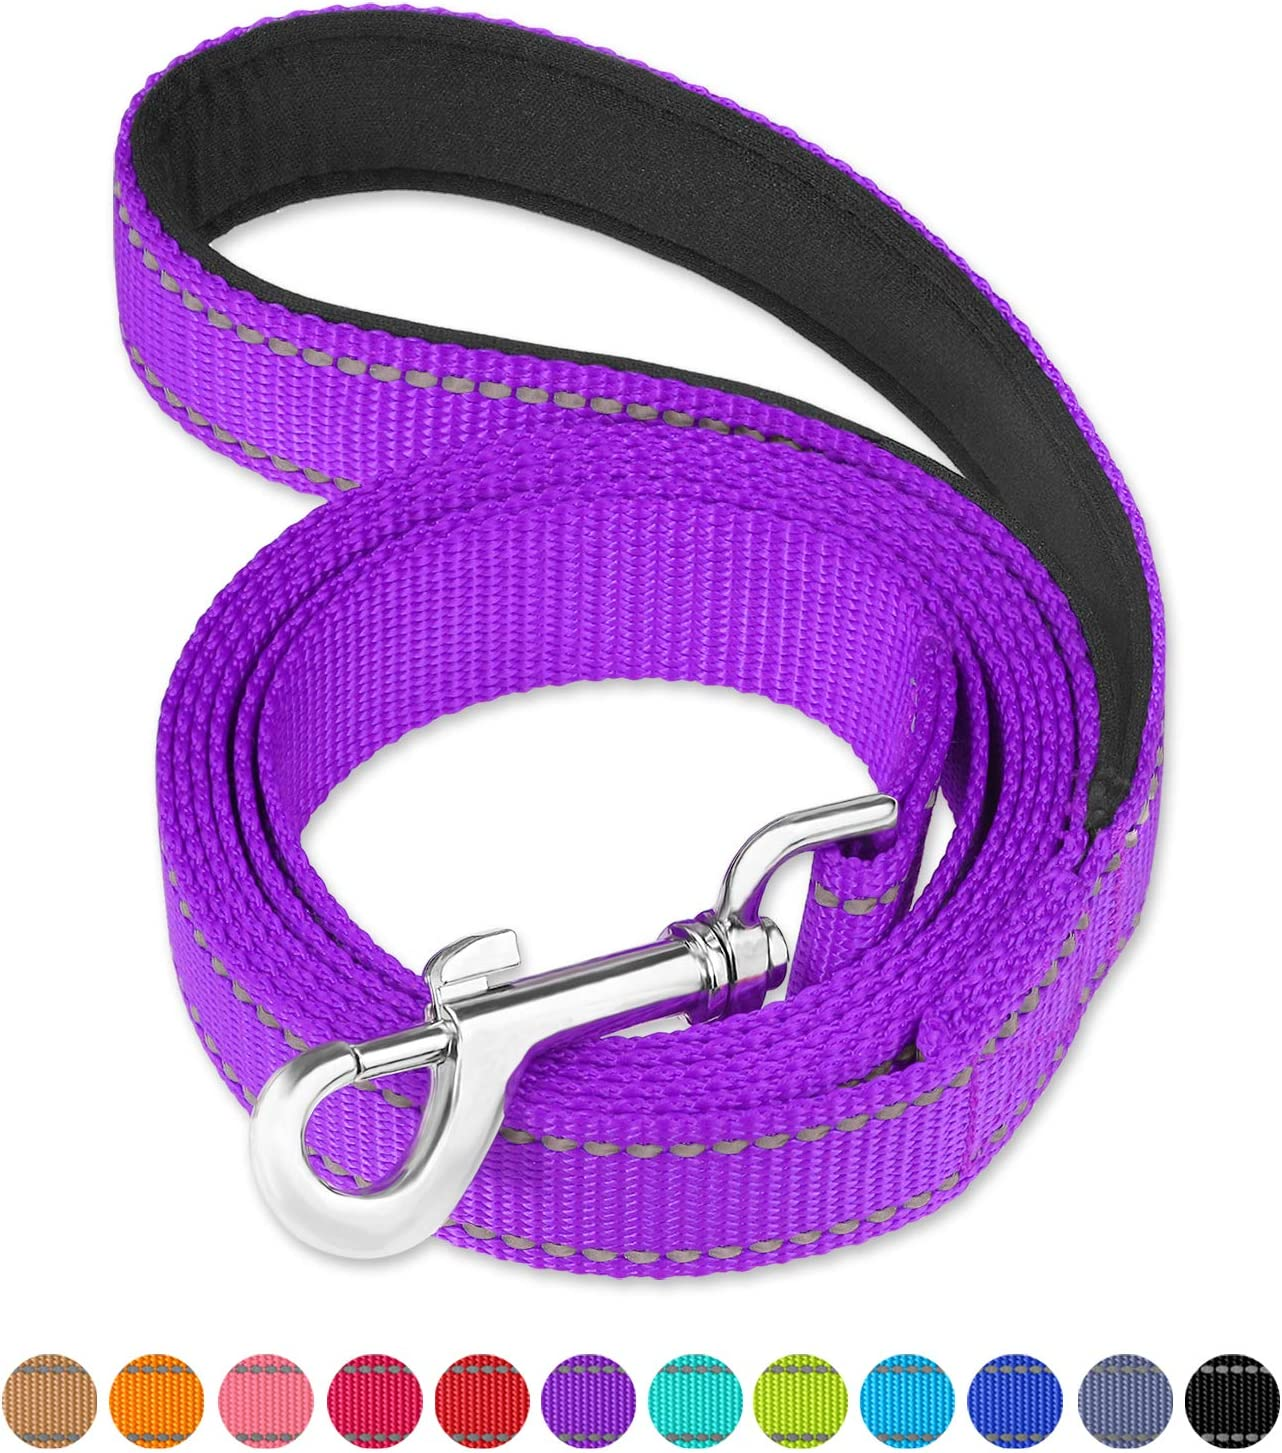 FunTags 6FT //4FT Reflective Nylon Dog Leash with Soft Padded Handle for Training,Walking Lead for Large Medium /& Small Dogs